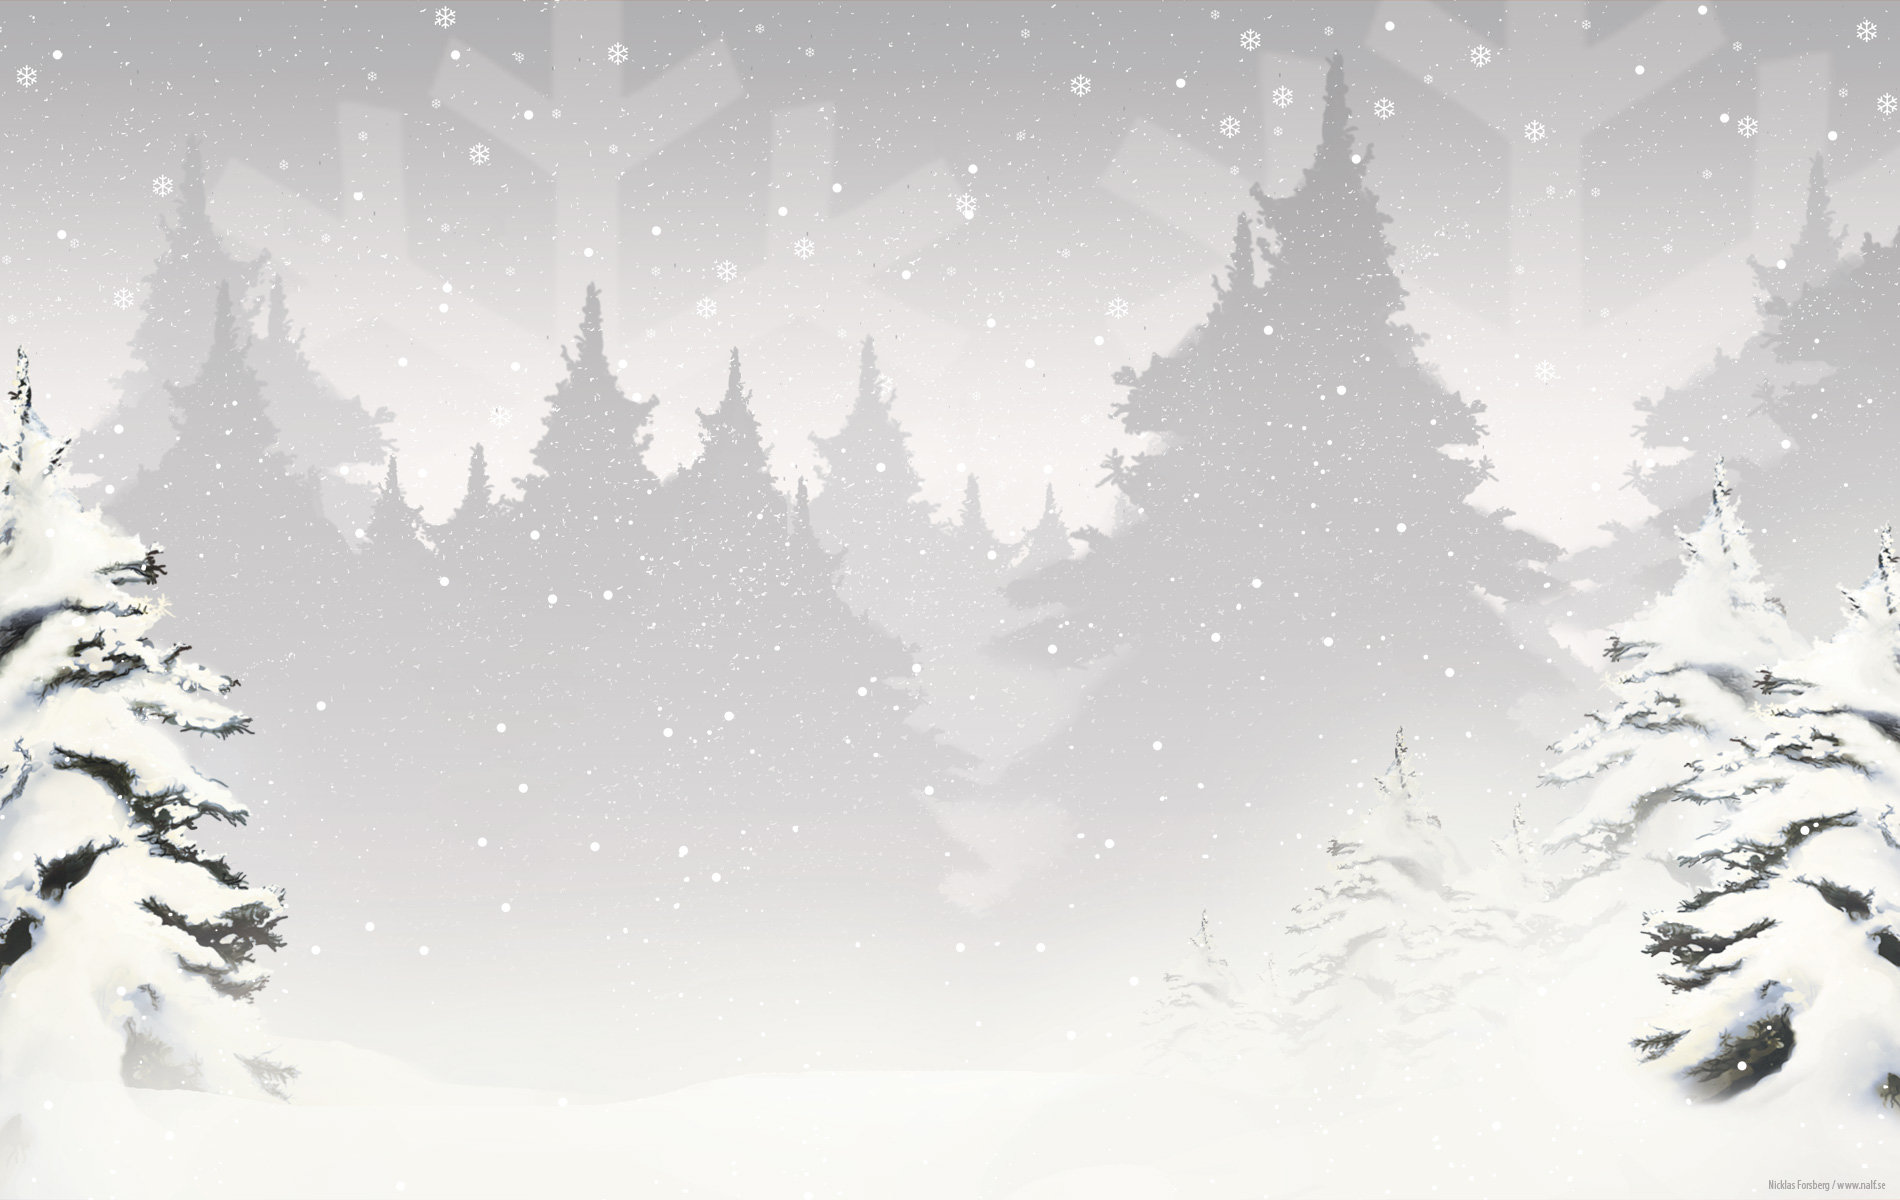 Xmas Wallpapers High Definition Epic Wallpaperz